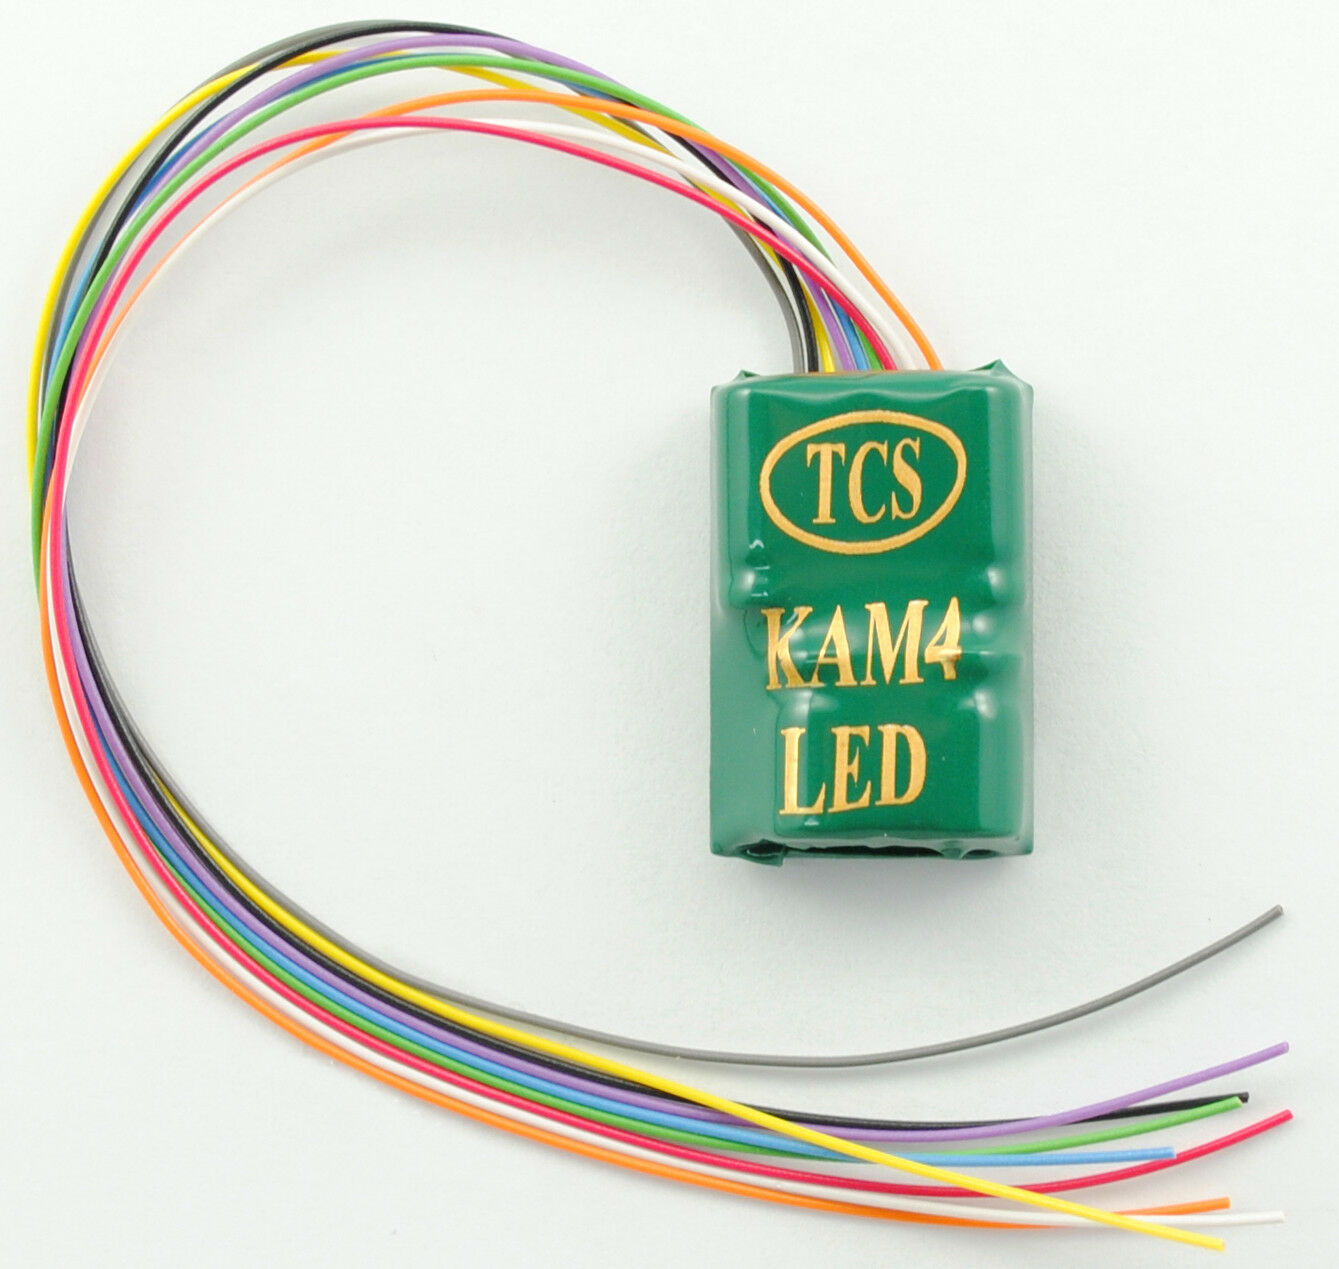 TCS 1479 KAM4-LED DCC 4 fx Decoder LED ready with Keep Alive   MODELRRSUPPLY